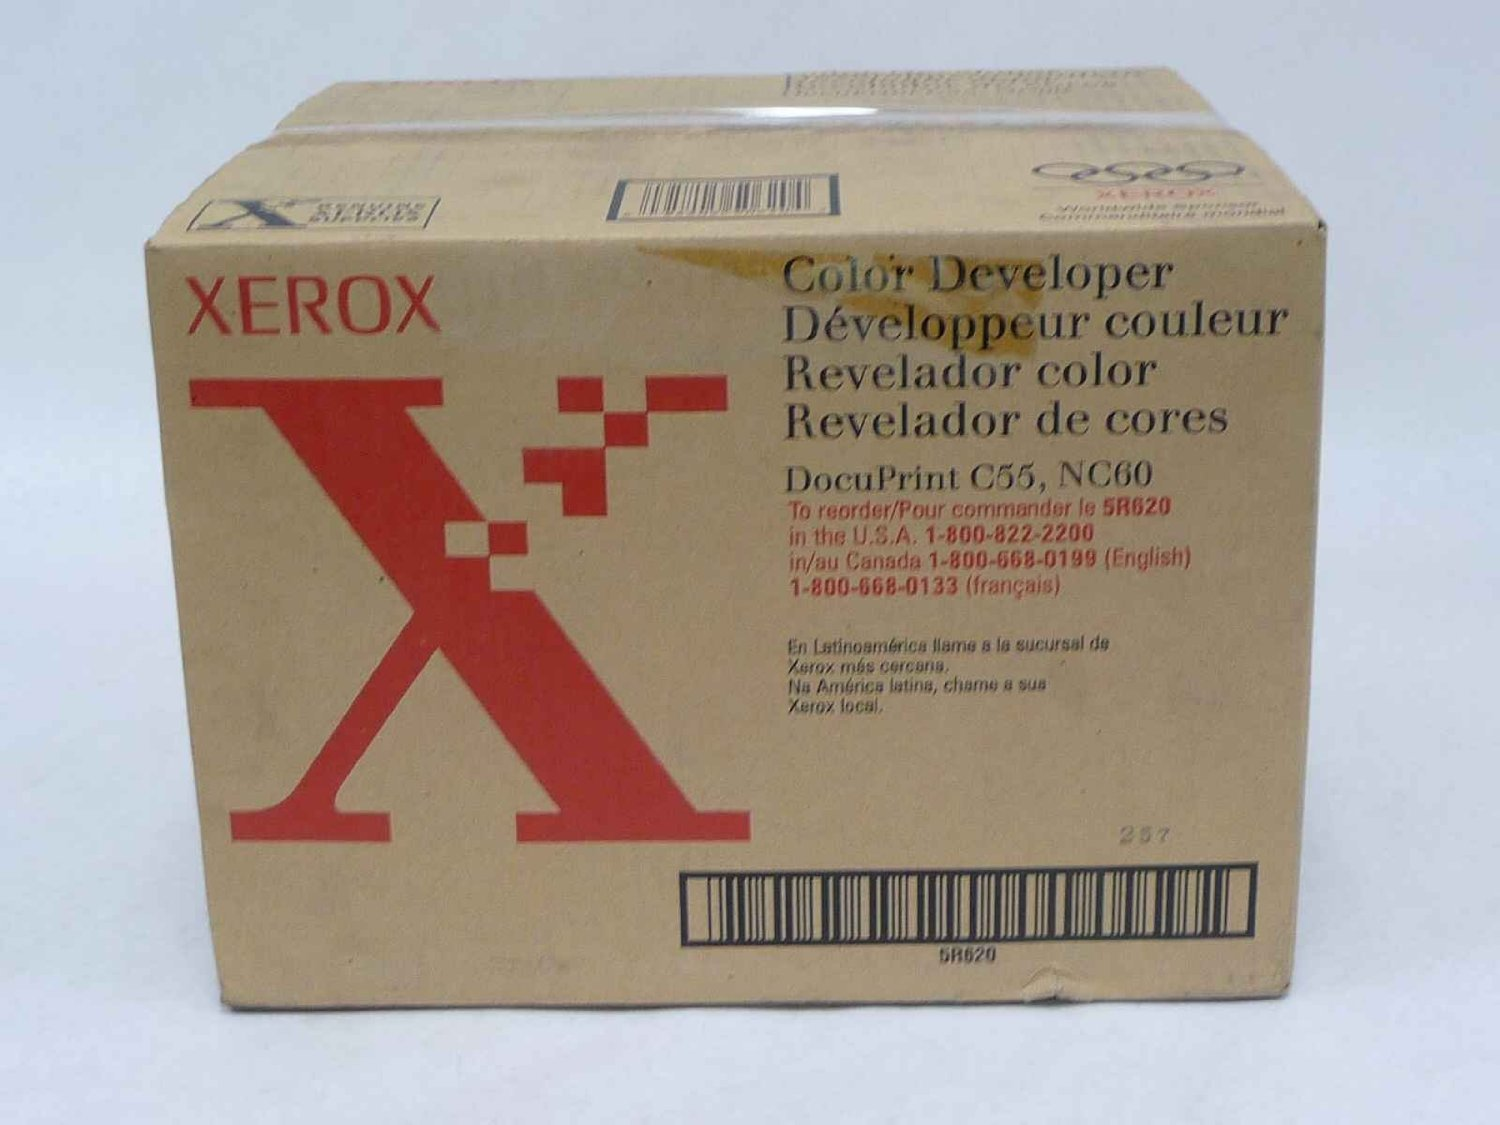 Xerox 5R620 Color Developer for Docuprint C55/NC60 by Xerox (Image #1)